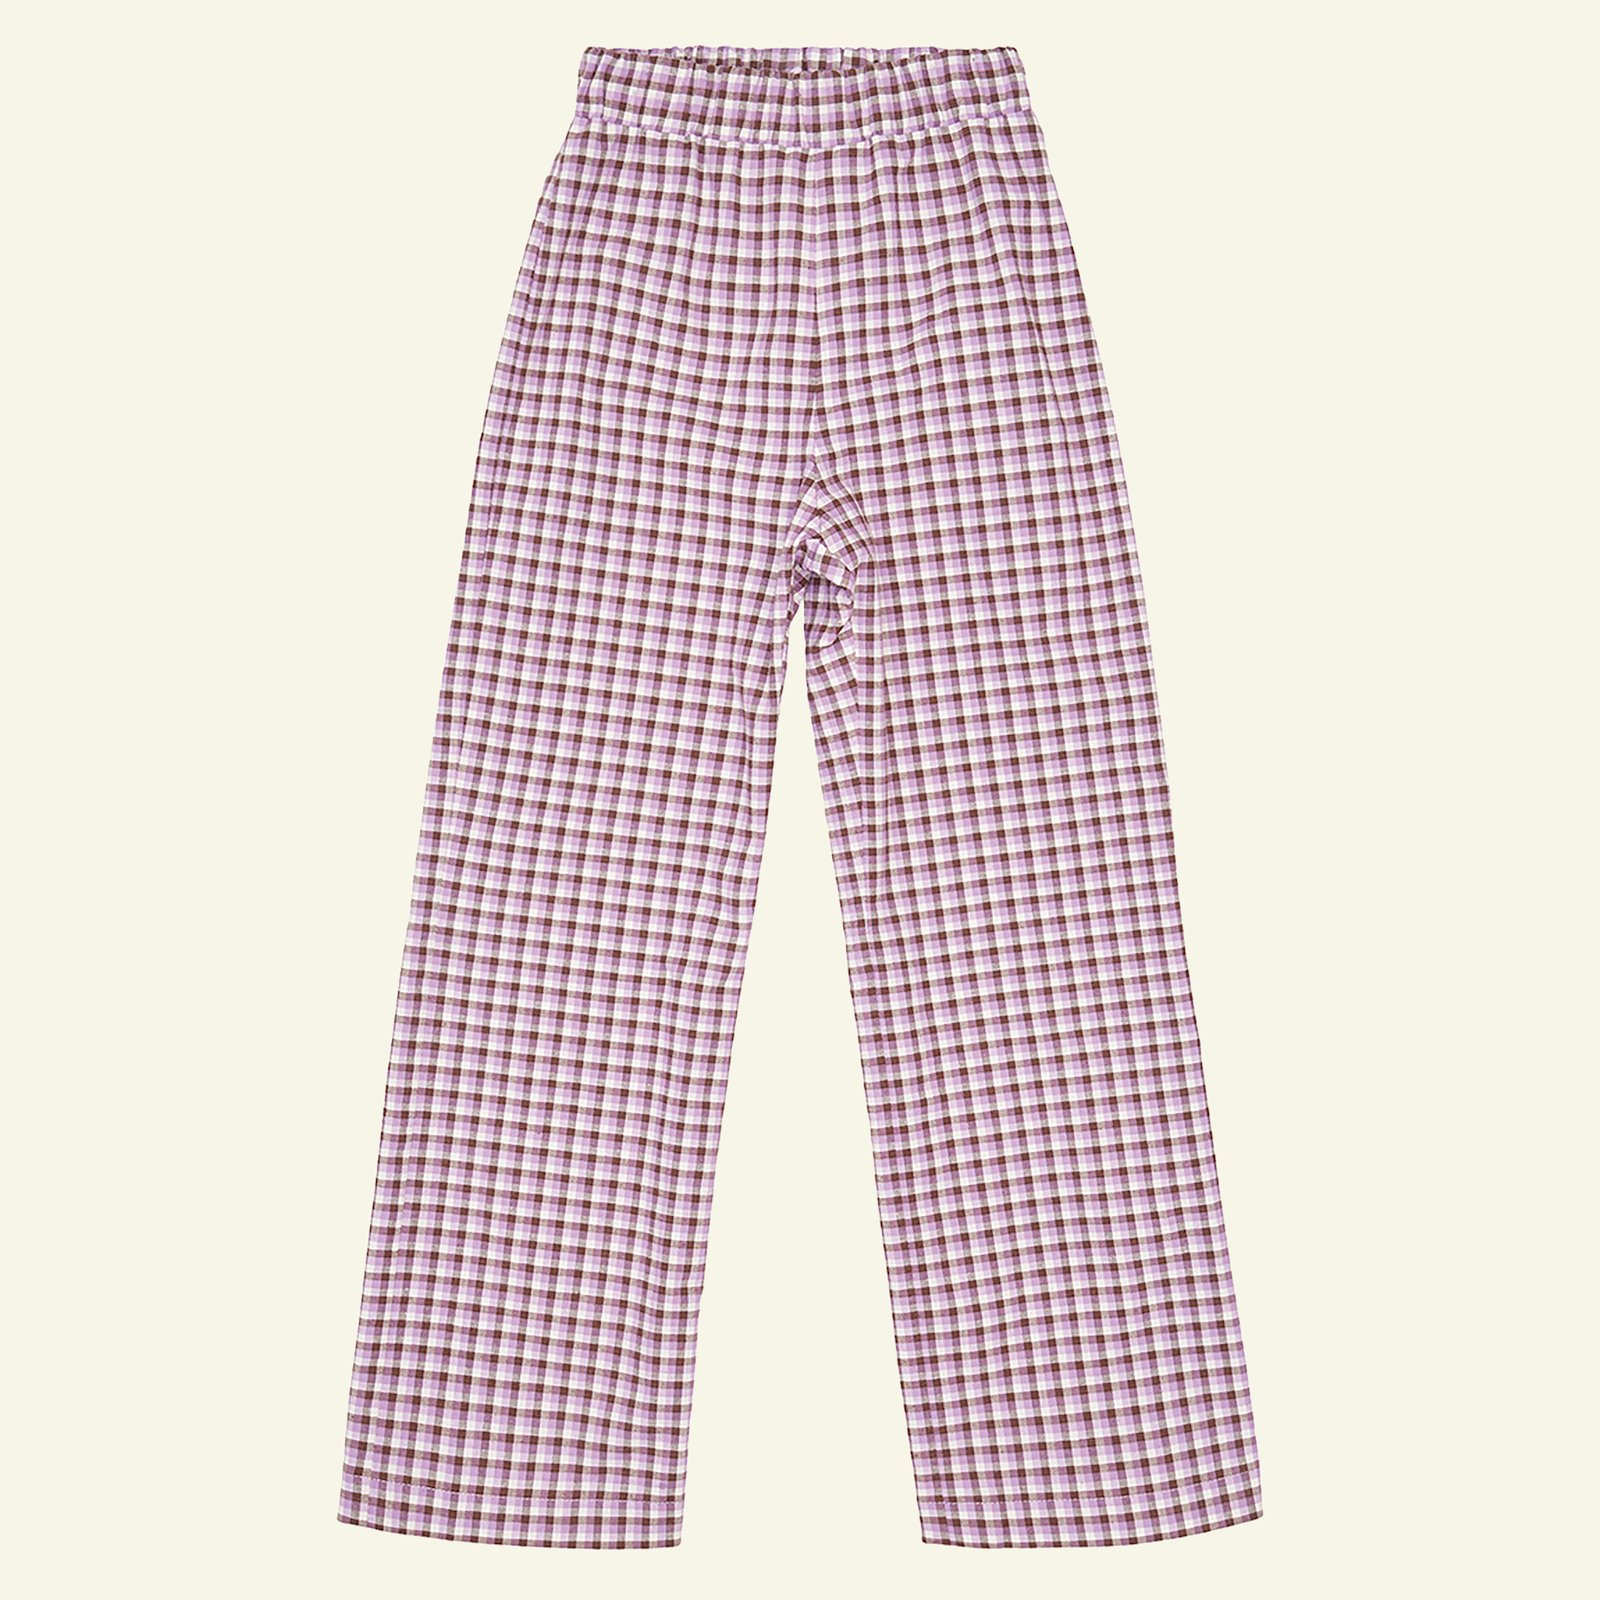 Woven YD check stretch purple/brown/sand p60034_501795_sskit